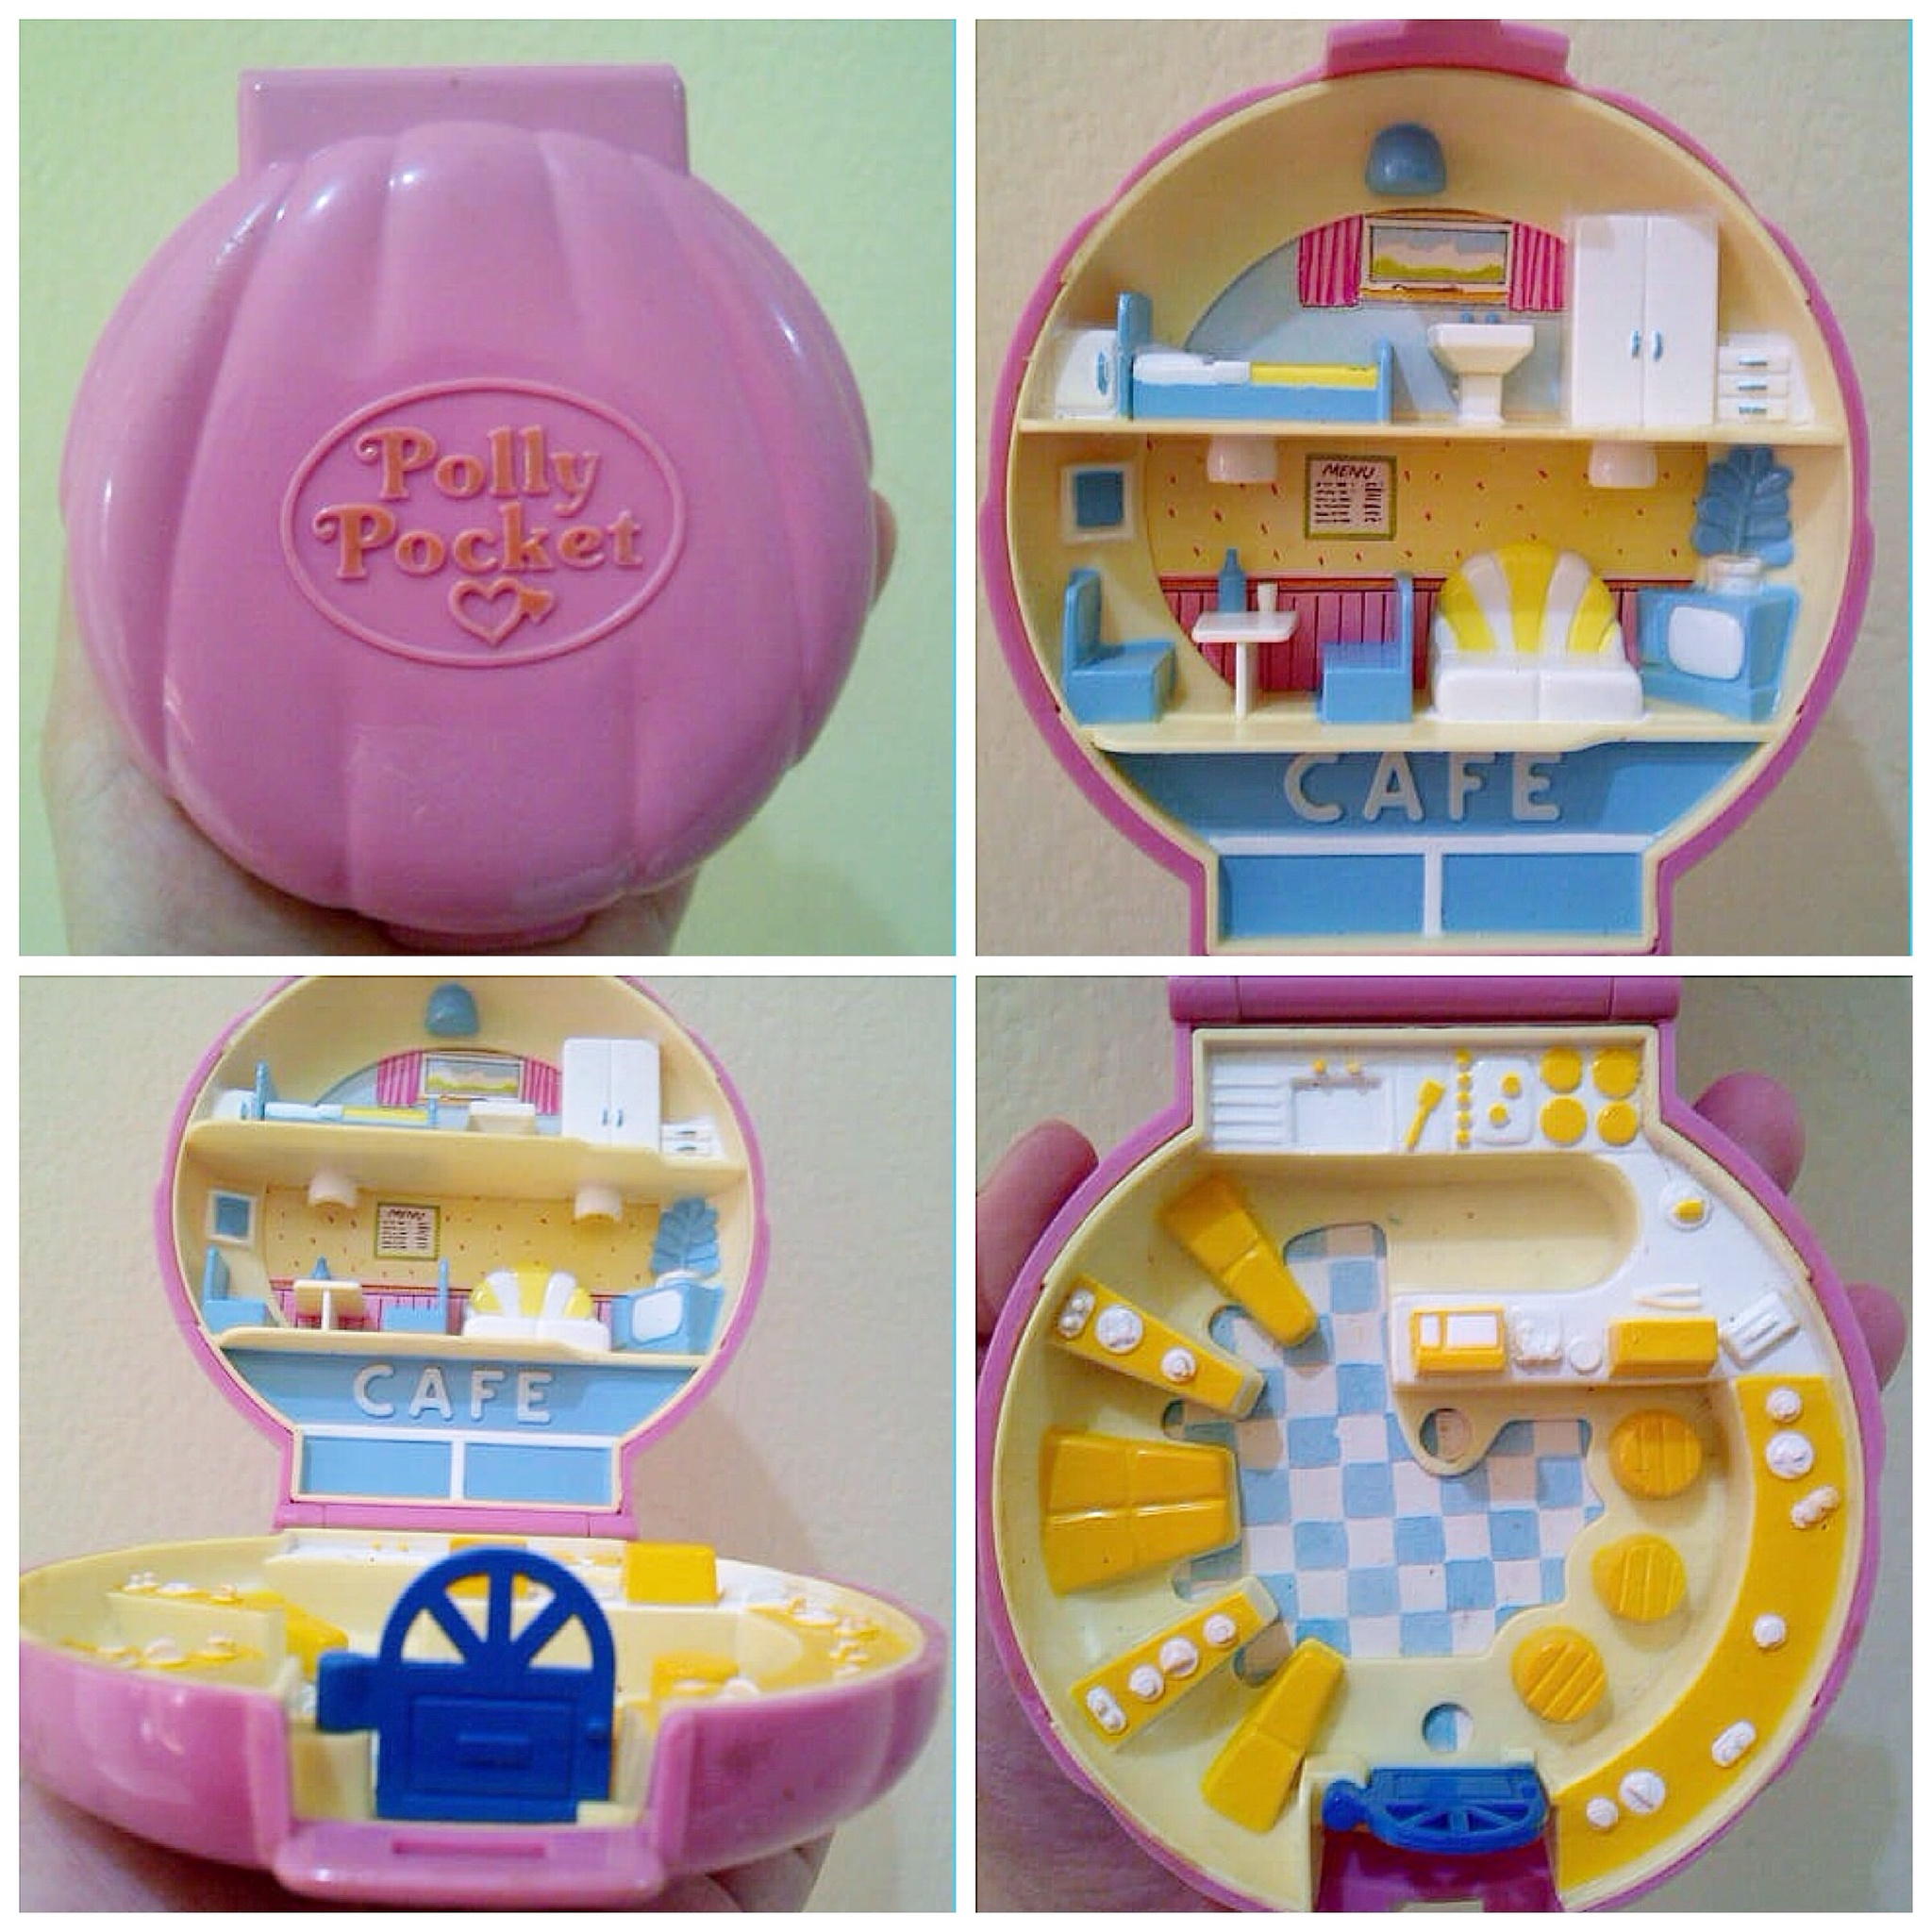 harga Polly pocket cafe 1989 Tokopedia.com